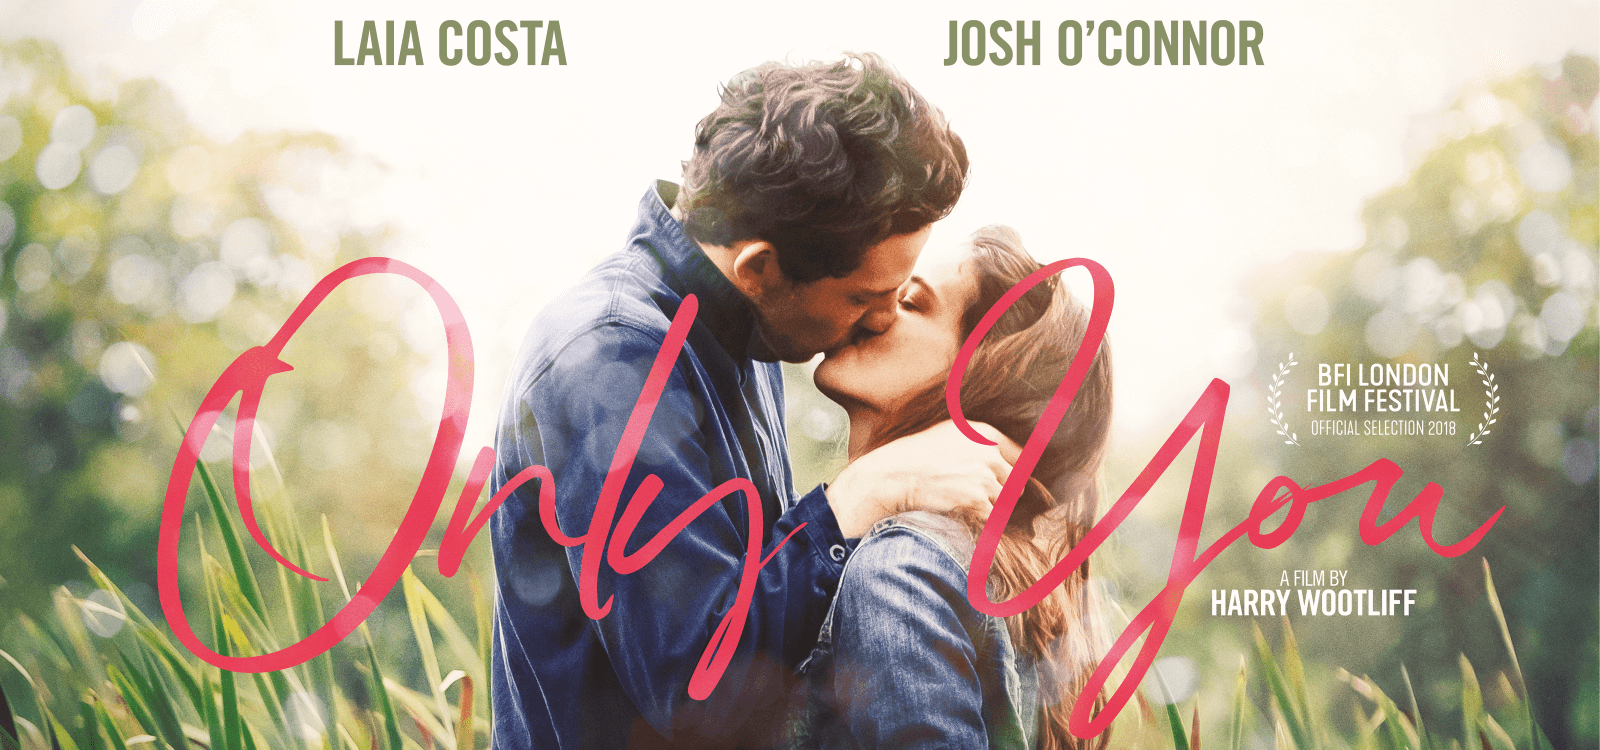 Laia Costa and Josh O'Connor embrace on the poster design for the film Only You